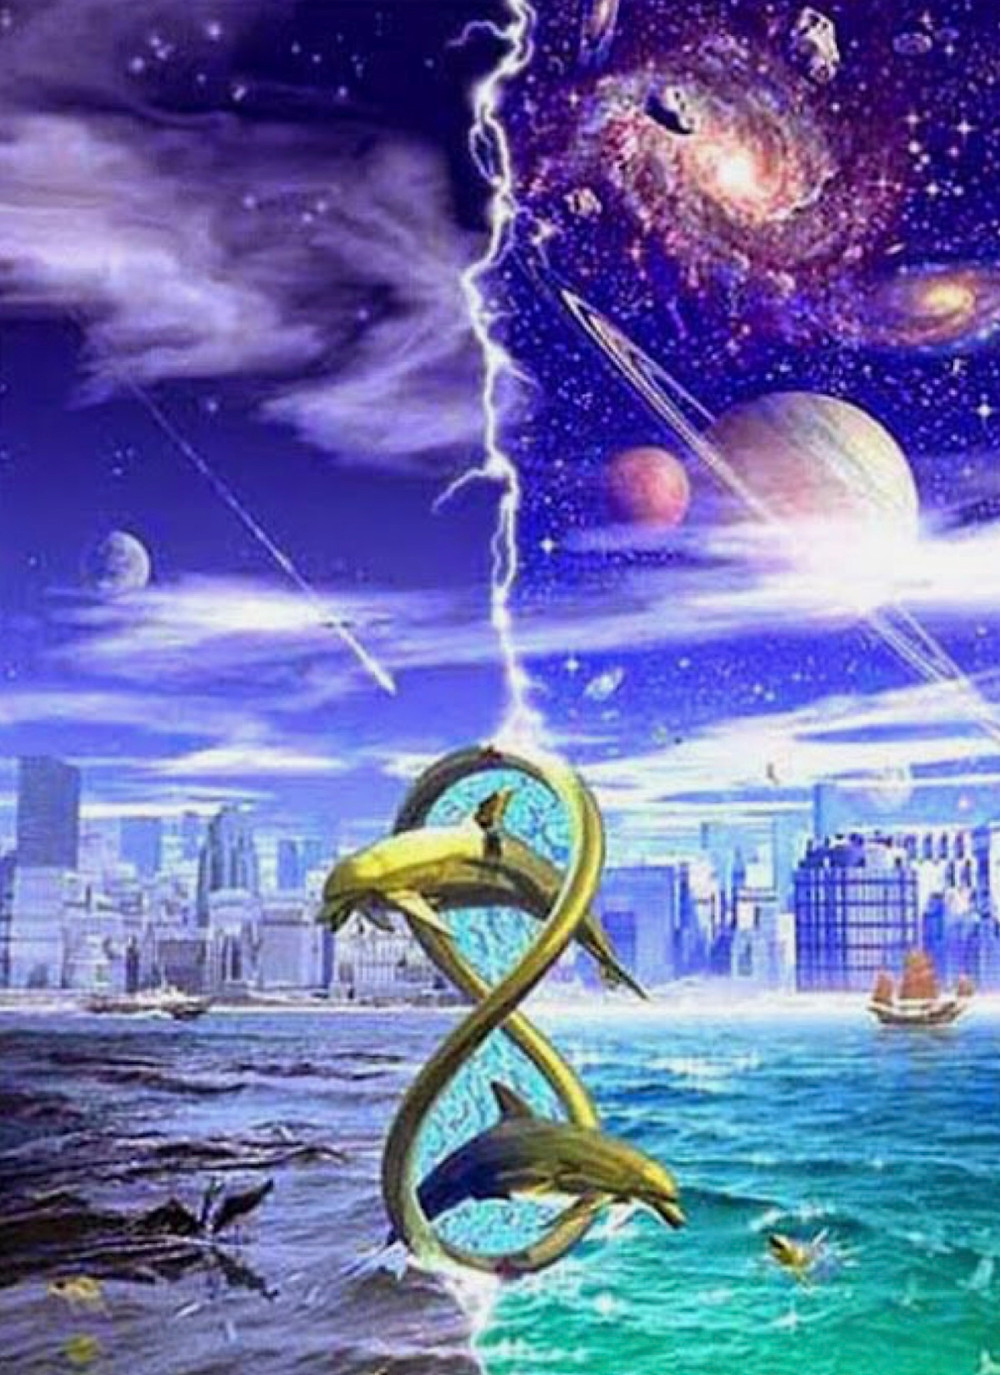 Sirius dolphins between earth and Sirius opening gates of infinity